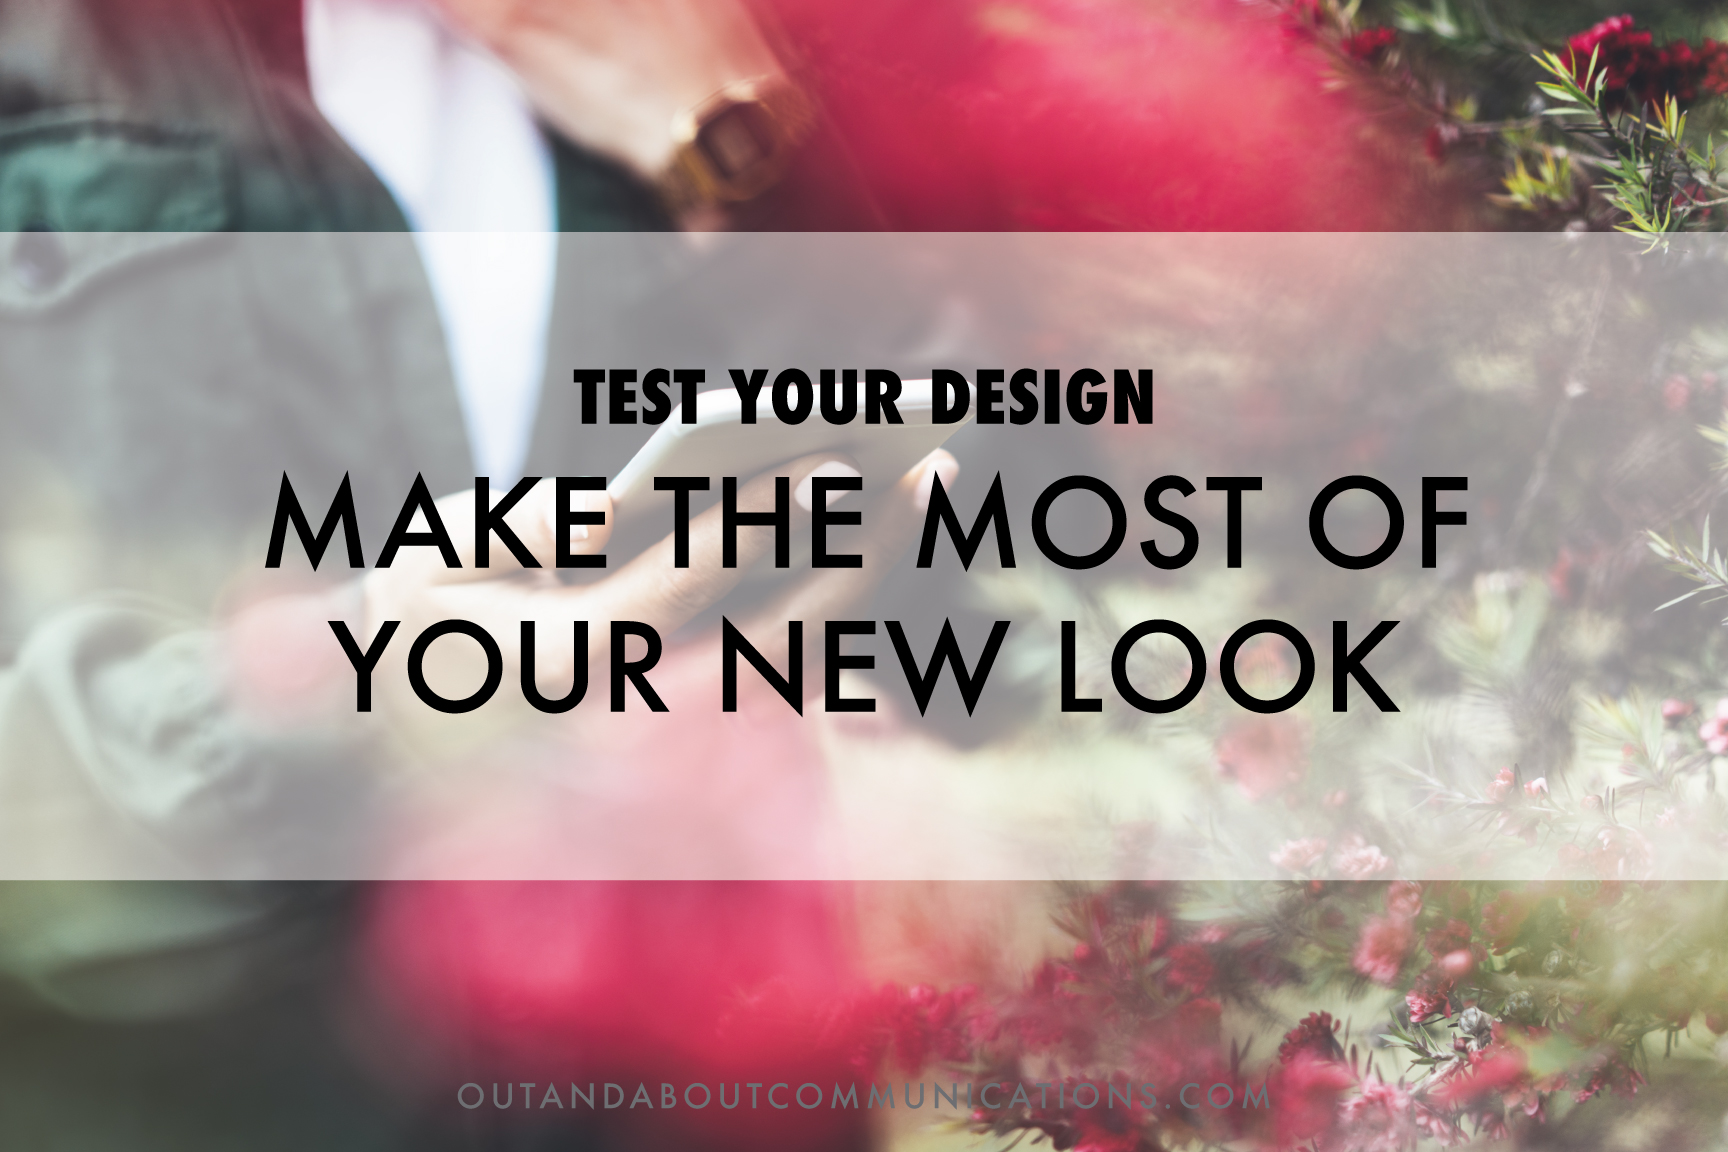 Test Your Design To Make The Most Of Your New Look